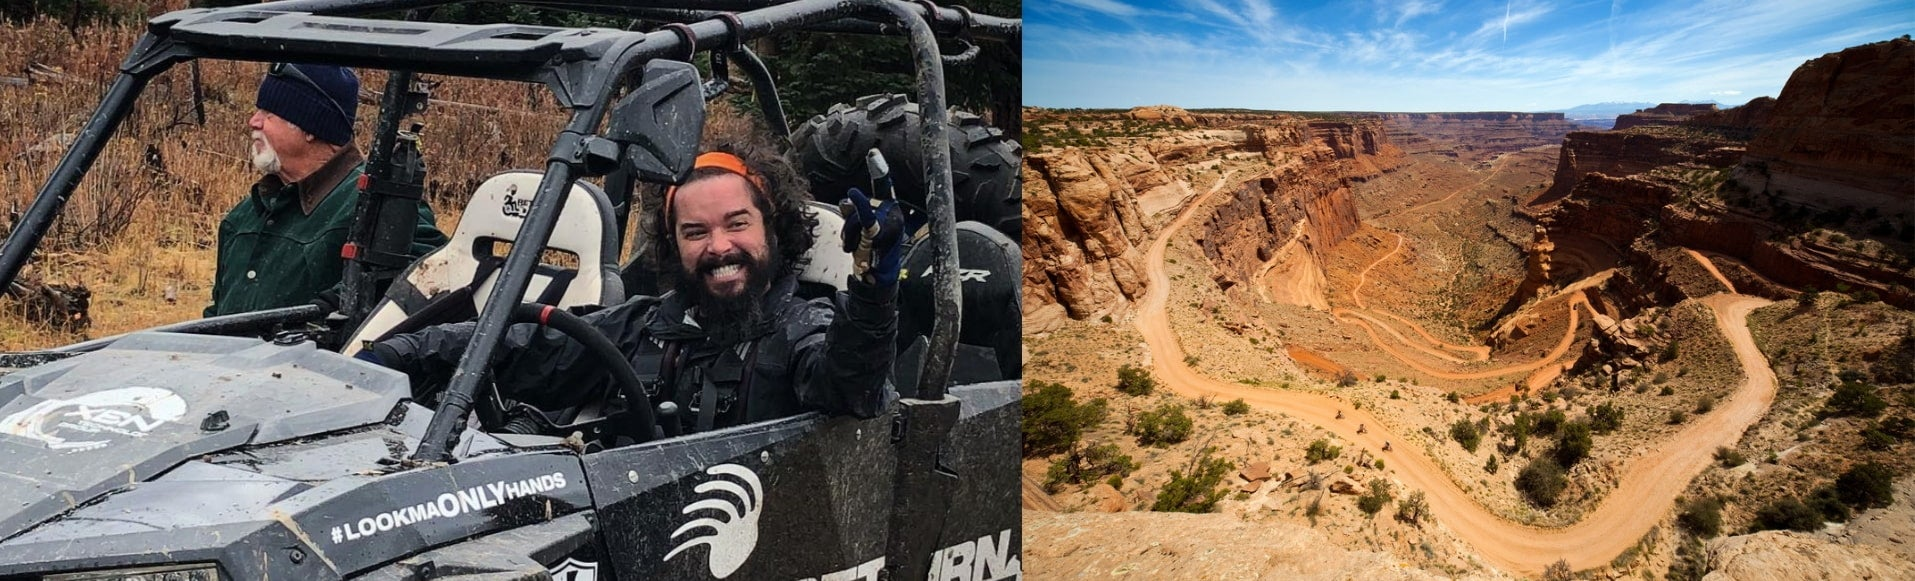 Left: Man smiling in ATV. Right: Aerial view of a rolling road in Utah